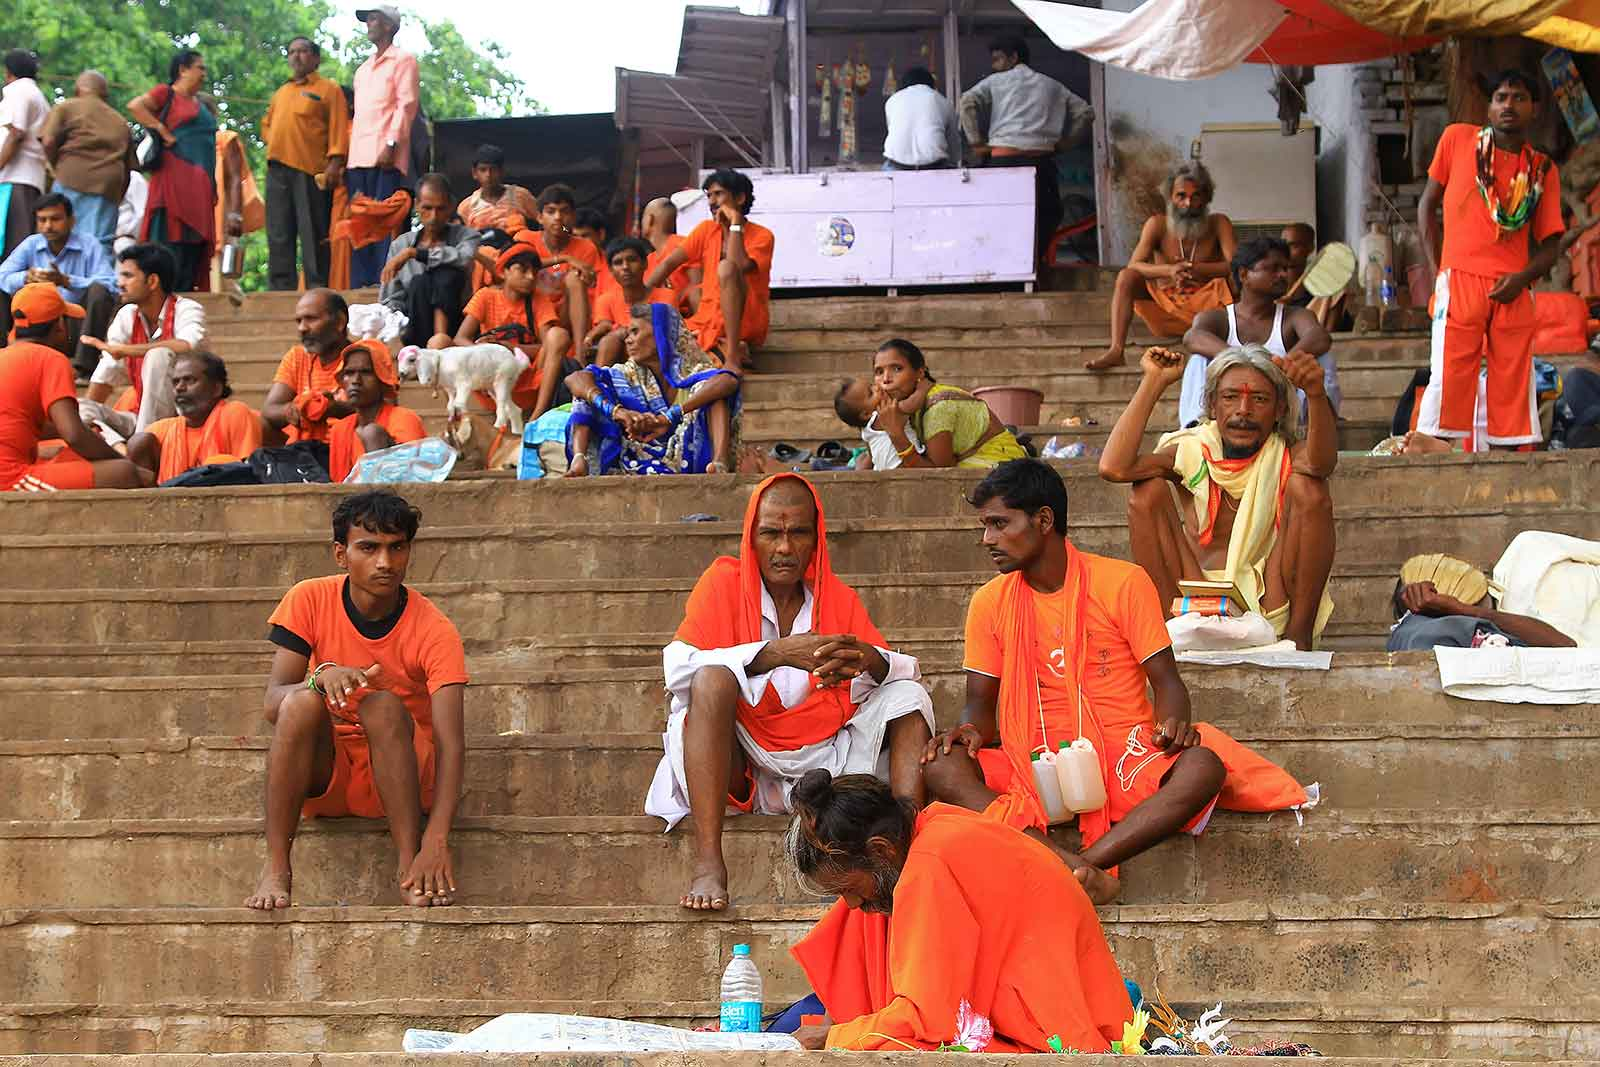 The Ghats in Varanasi are always full with people, bathing, washing or praying.